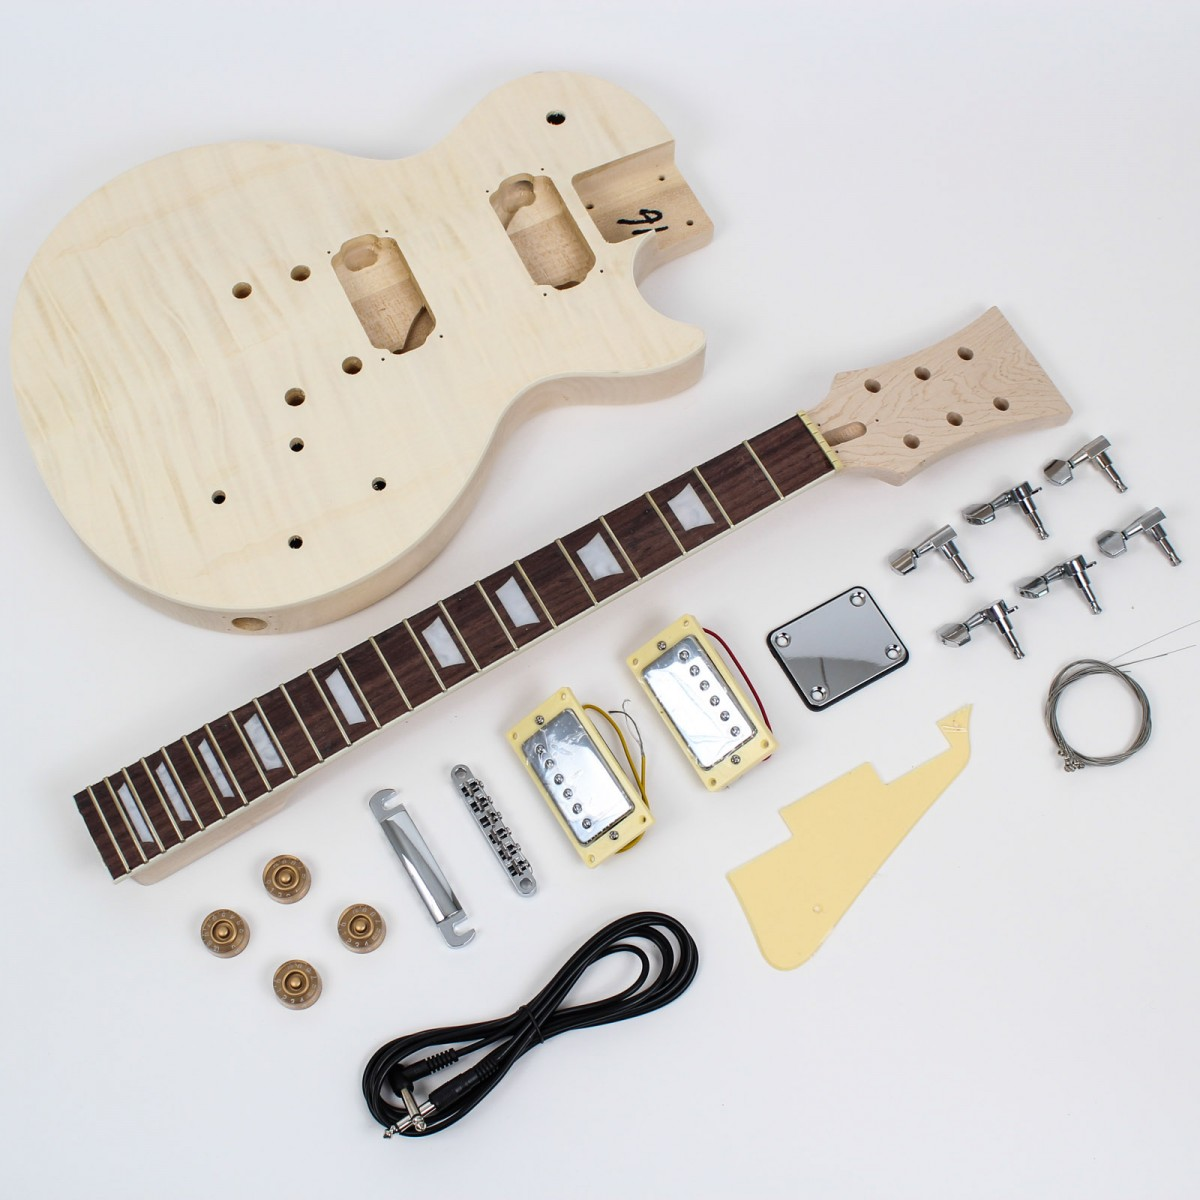 les paul style guitar kit flame maple diy guitars. Black Bedroom Furniture Sets. Home Design Ideas